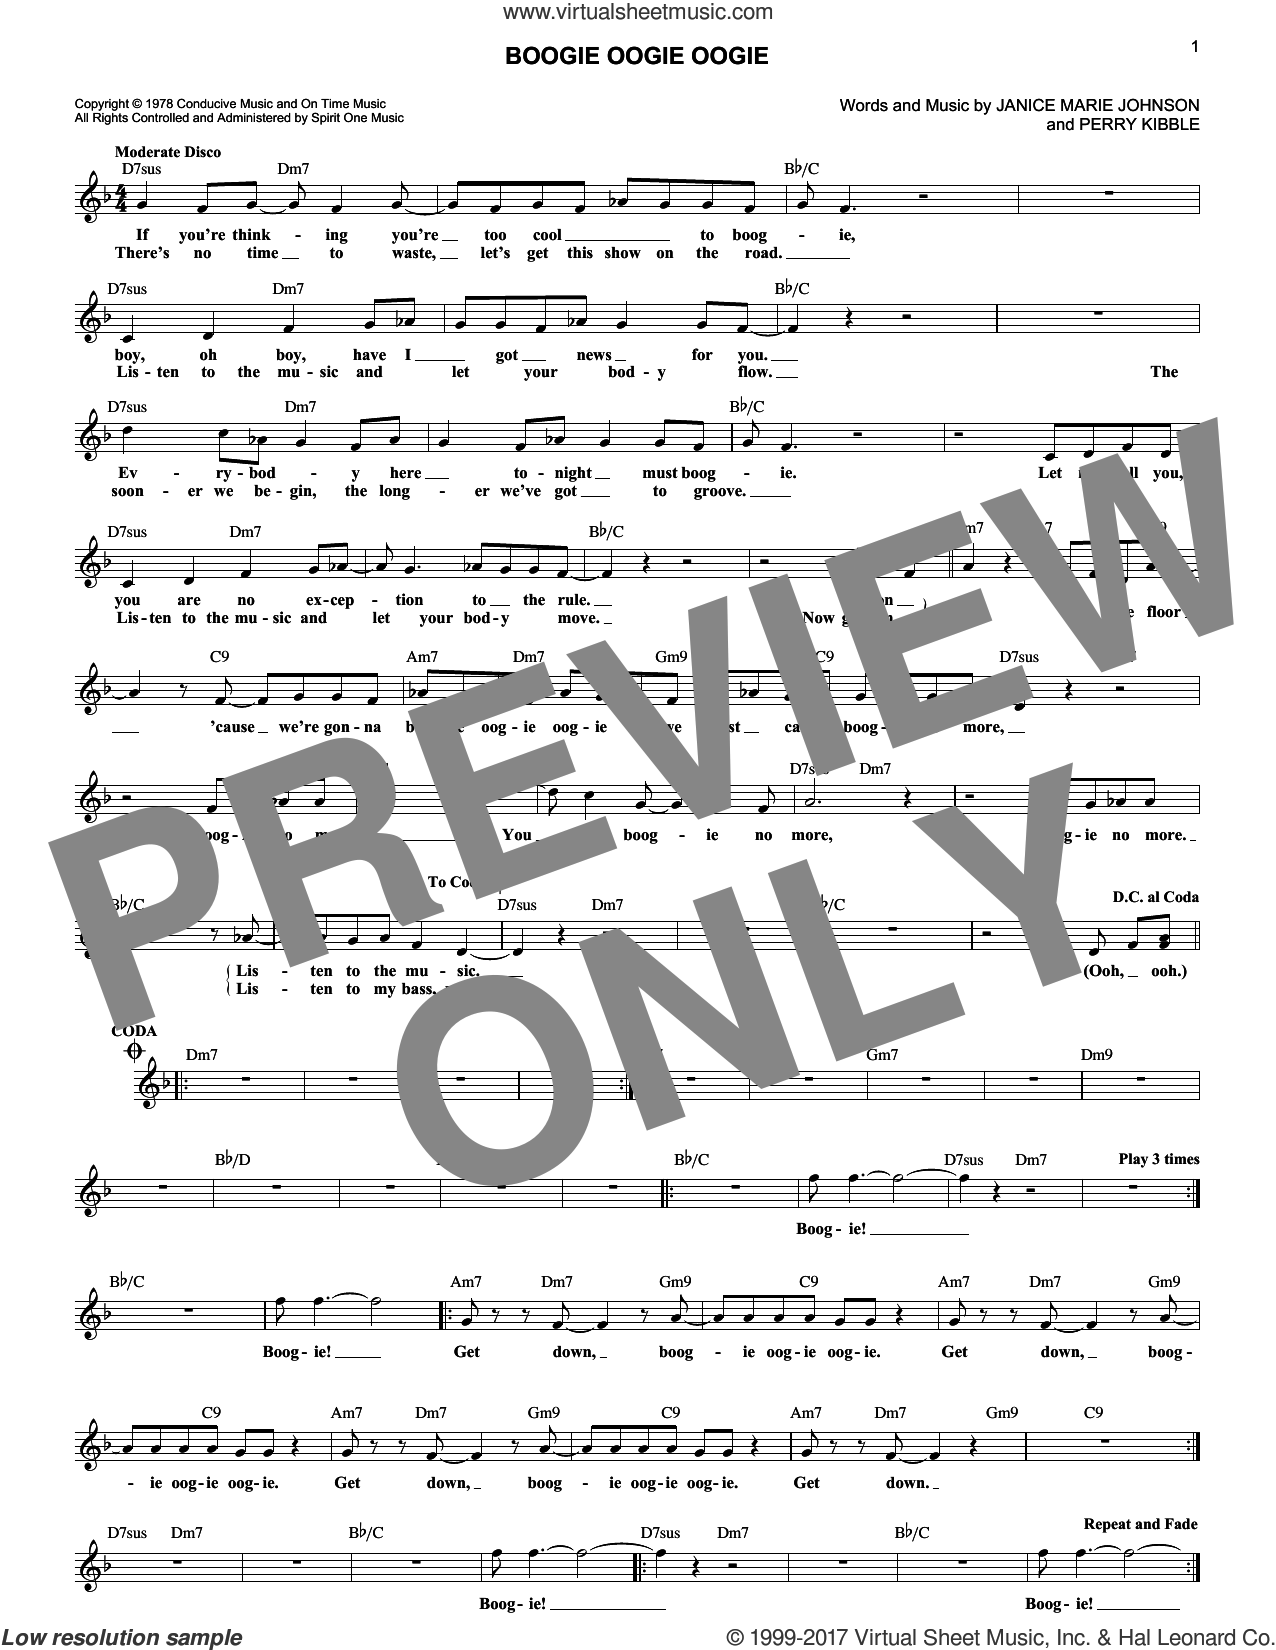 Boogie Oogie Oogie sheet music for voice and other instruments (fake book) by Perry Kibble. Score Image Preview.